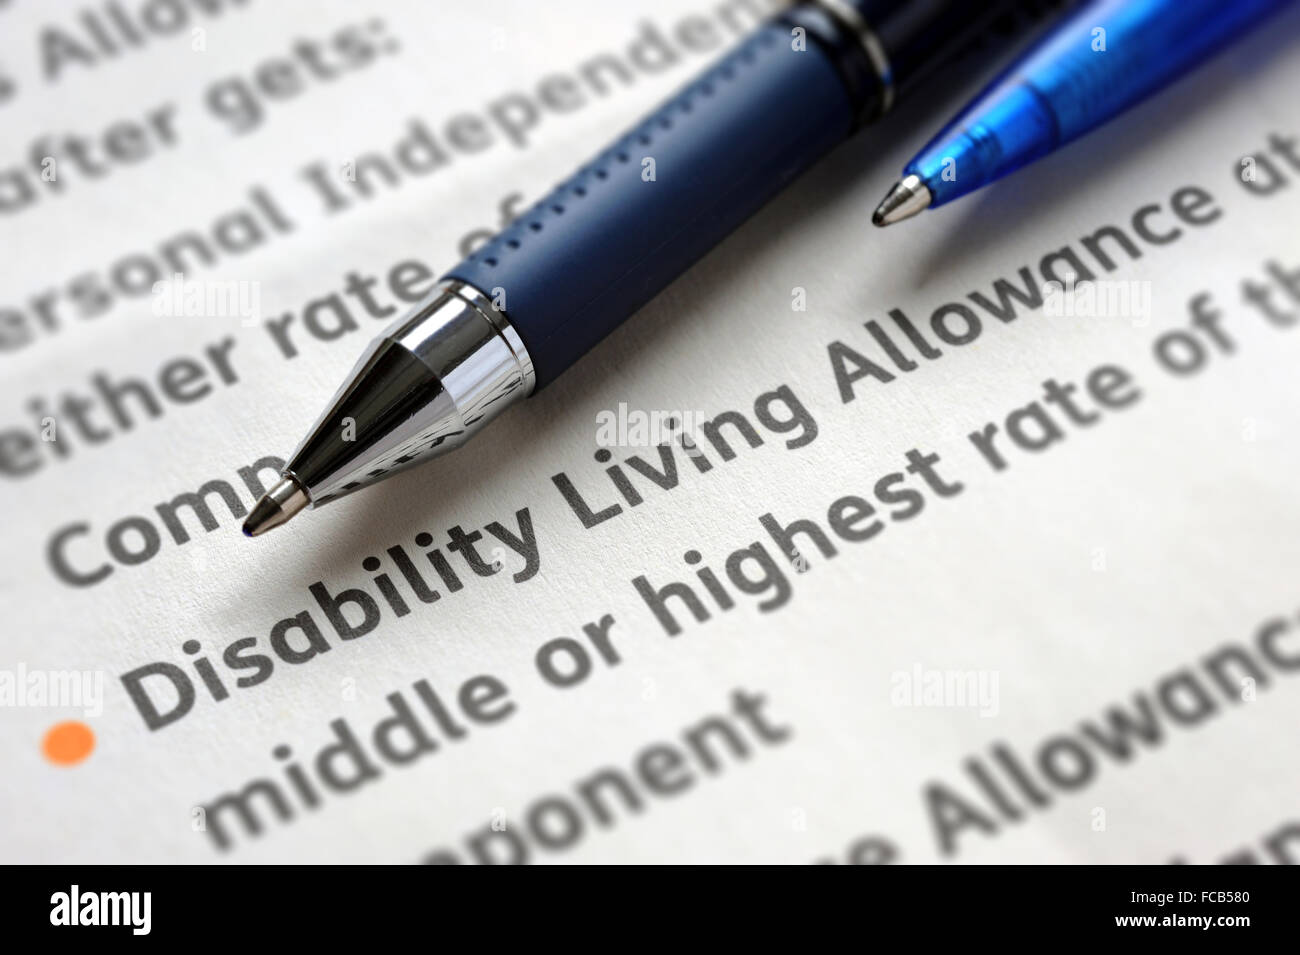 DISABILITY LIVING  ALLOWANCE INFORMATION FORM RE THE ELDERLY BENEFITS WELFARE CARING CARE HOME AGING POPULATION - Stock Image